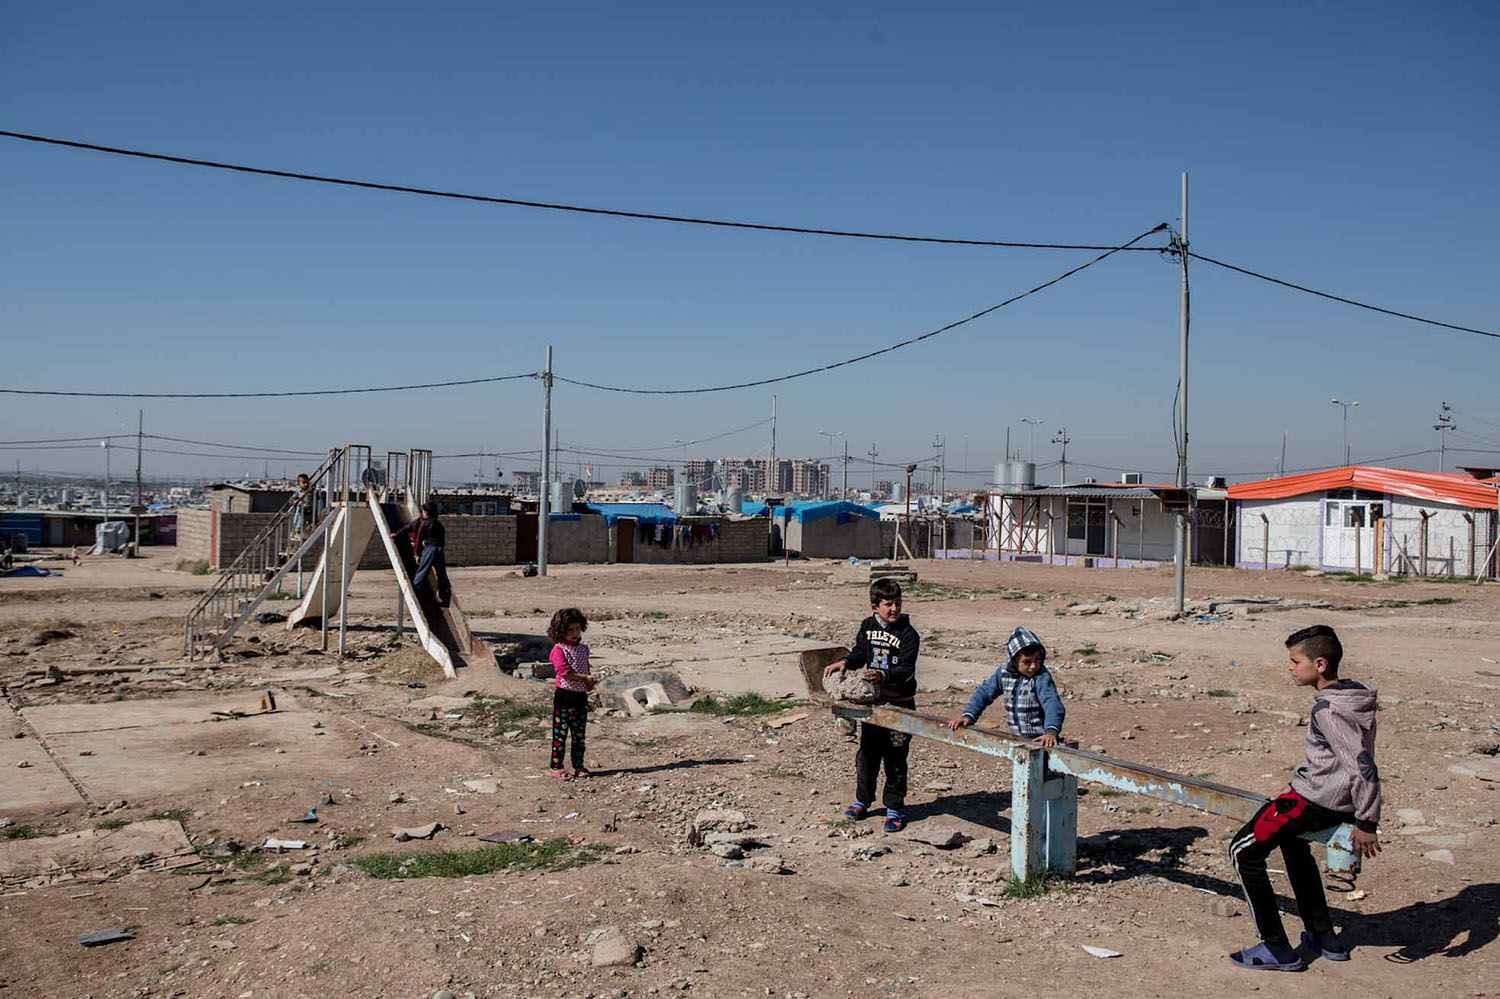 Domiz Refugee Camp, Northern Iraq February 2016